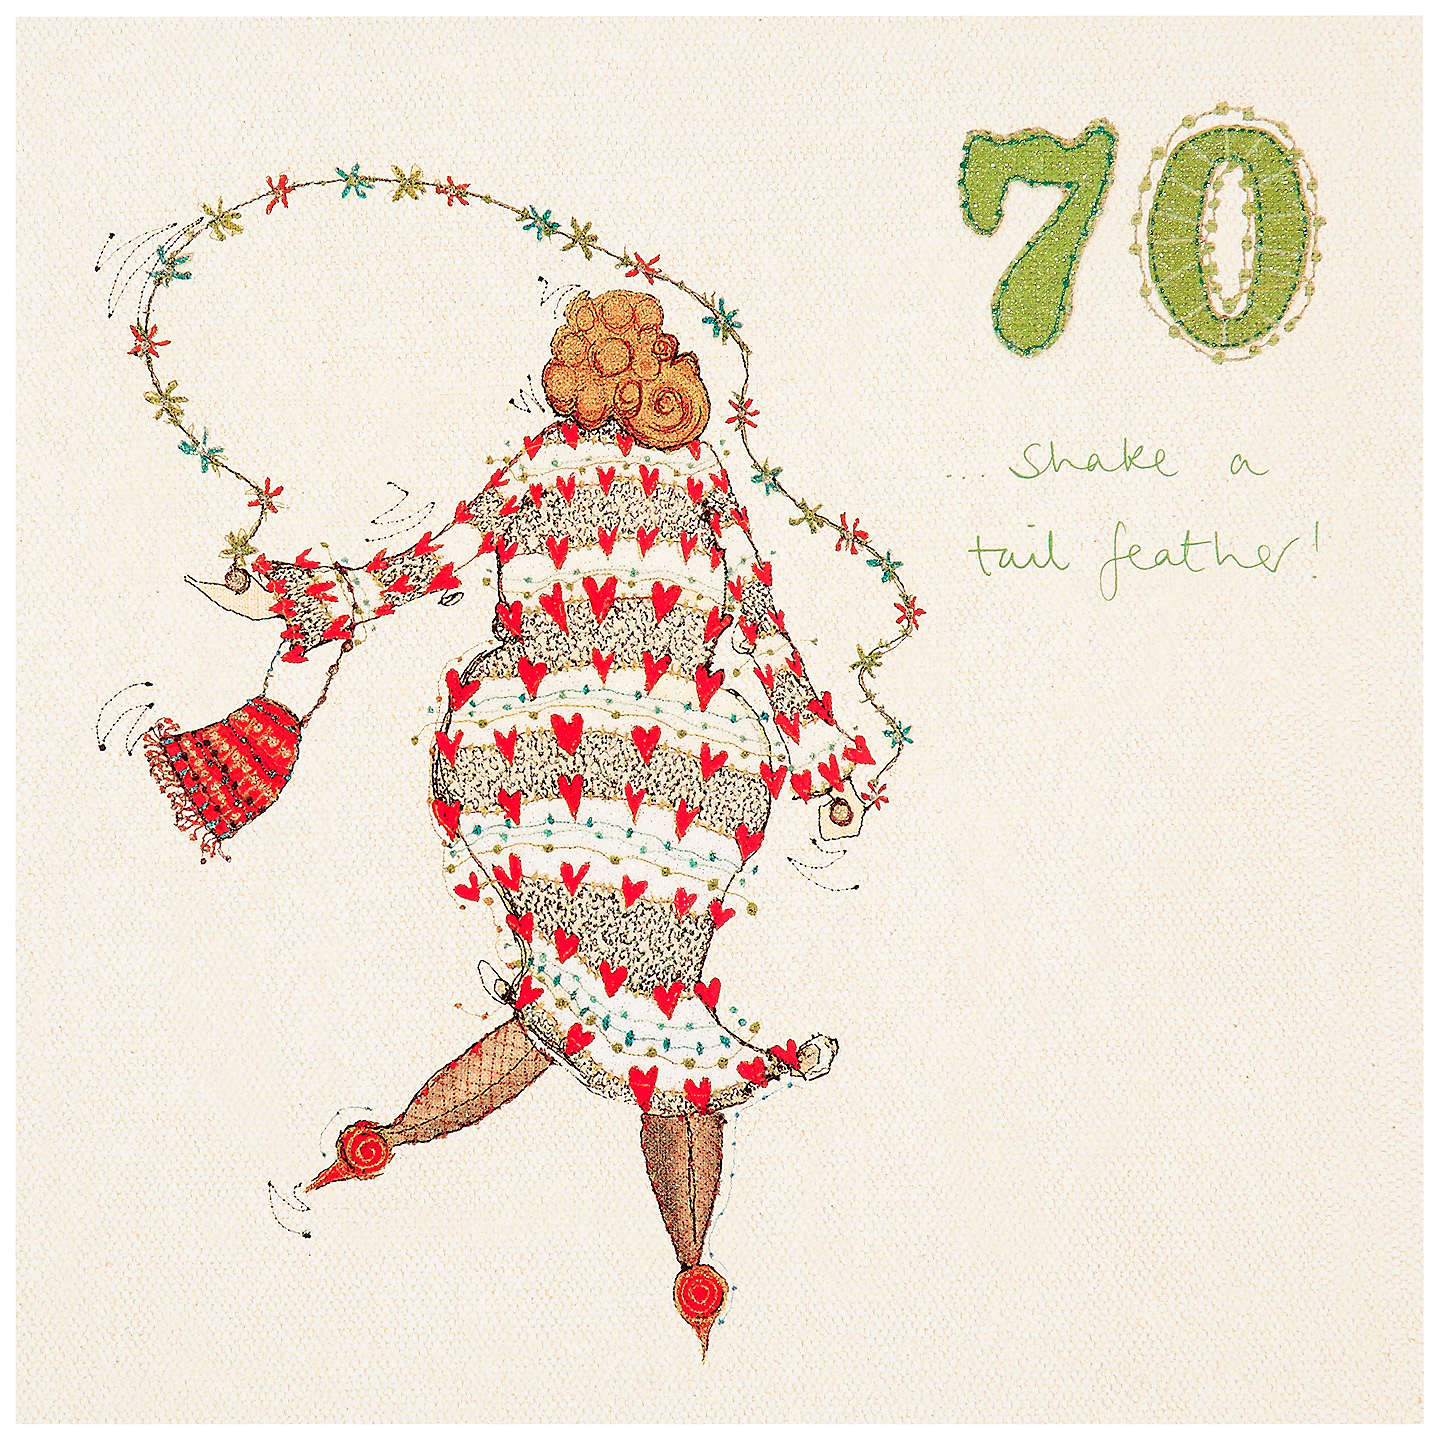 Woodmansterne 70th birthday card at john lewis buywoodmansterne 70th birthday card online at johnlewis bookmarktalkfo Choice Image